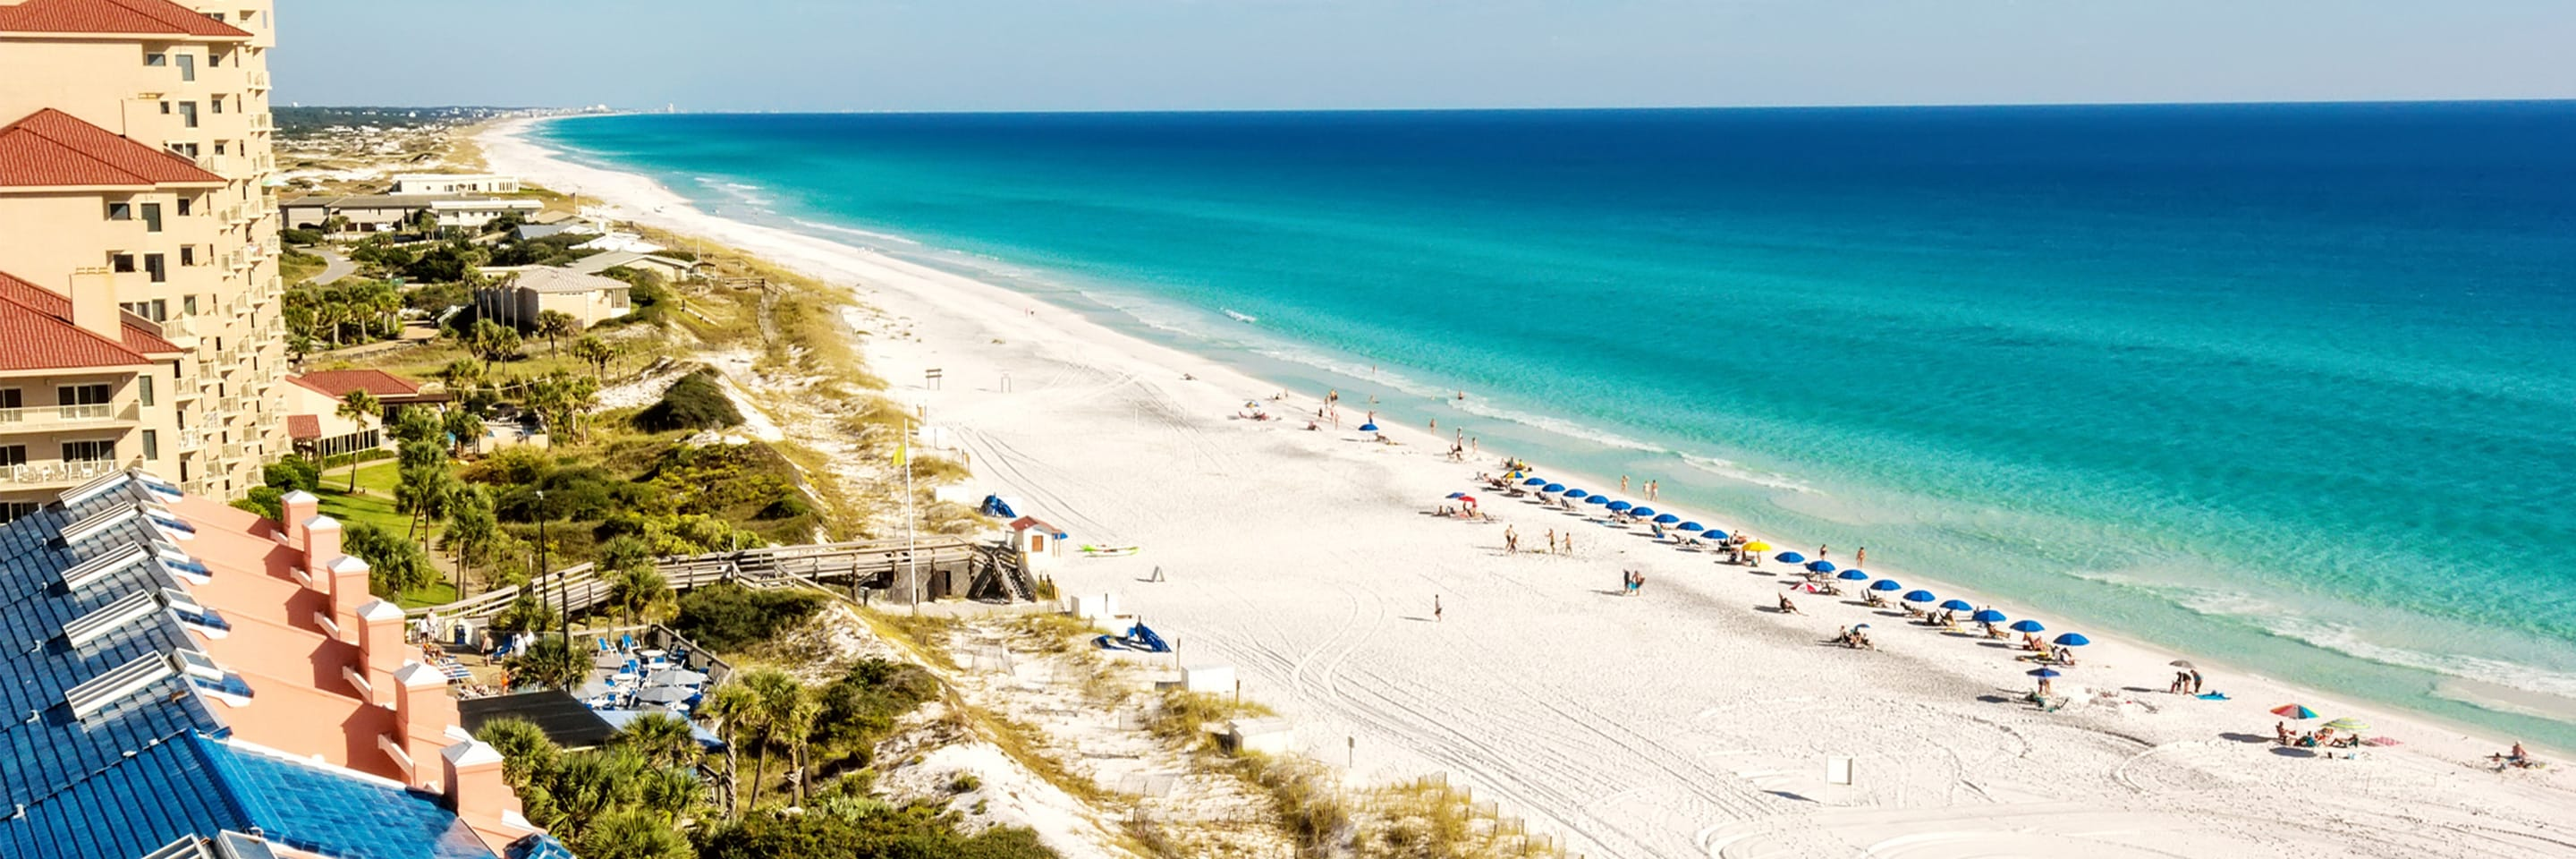 Top Hotels Near Destin Marriott